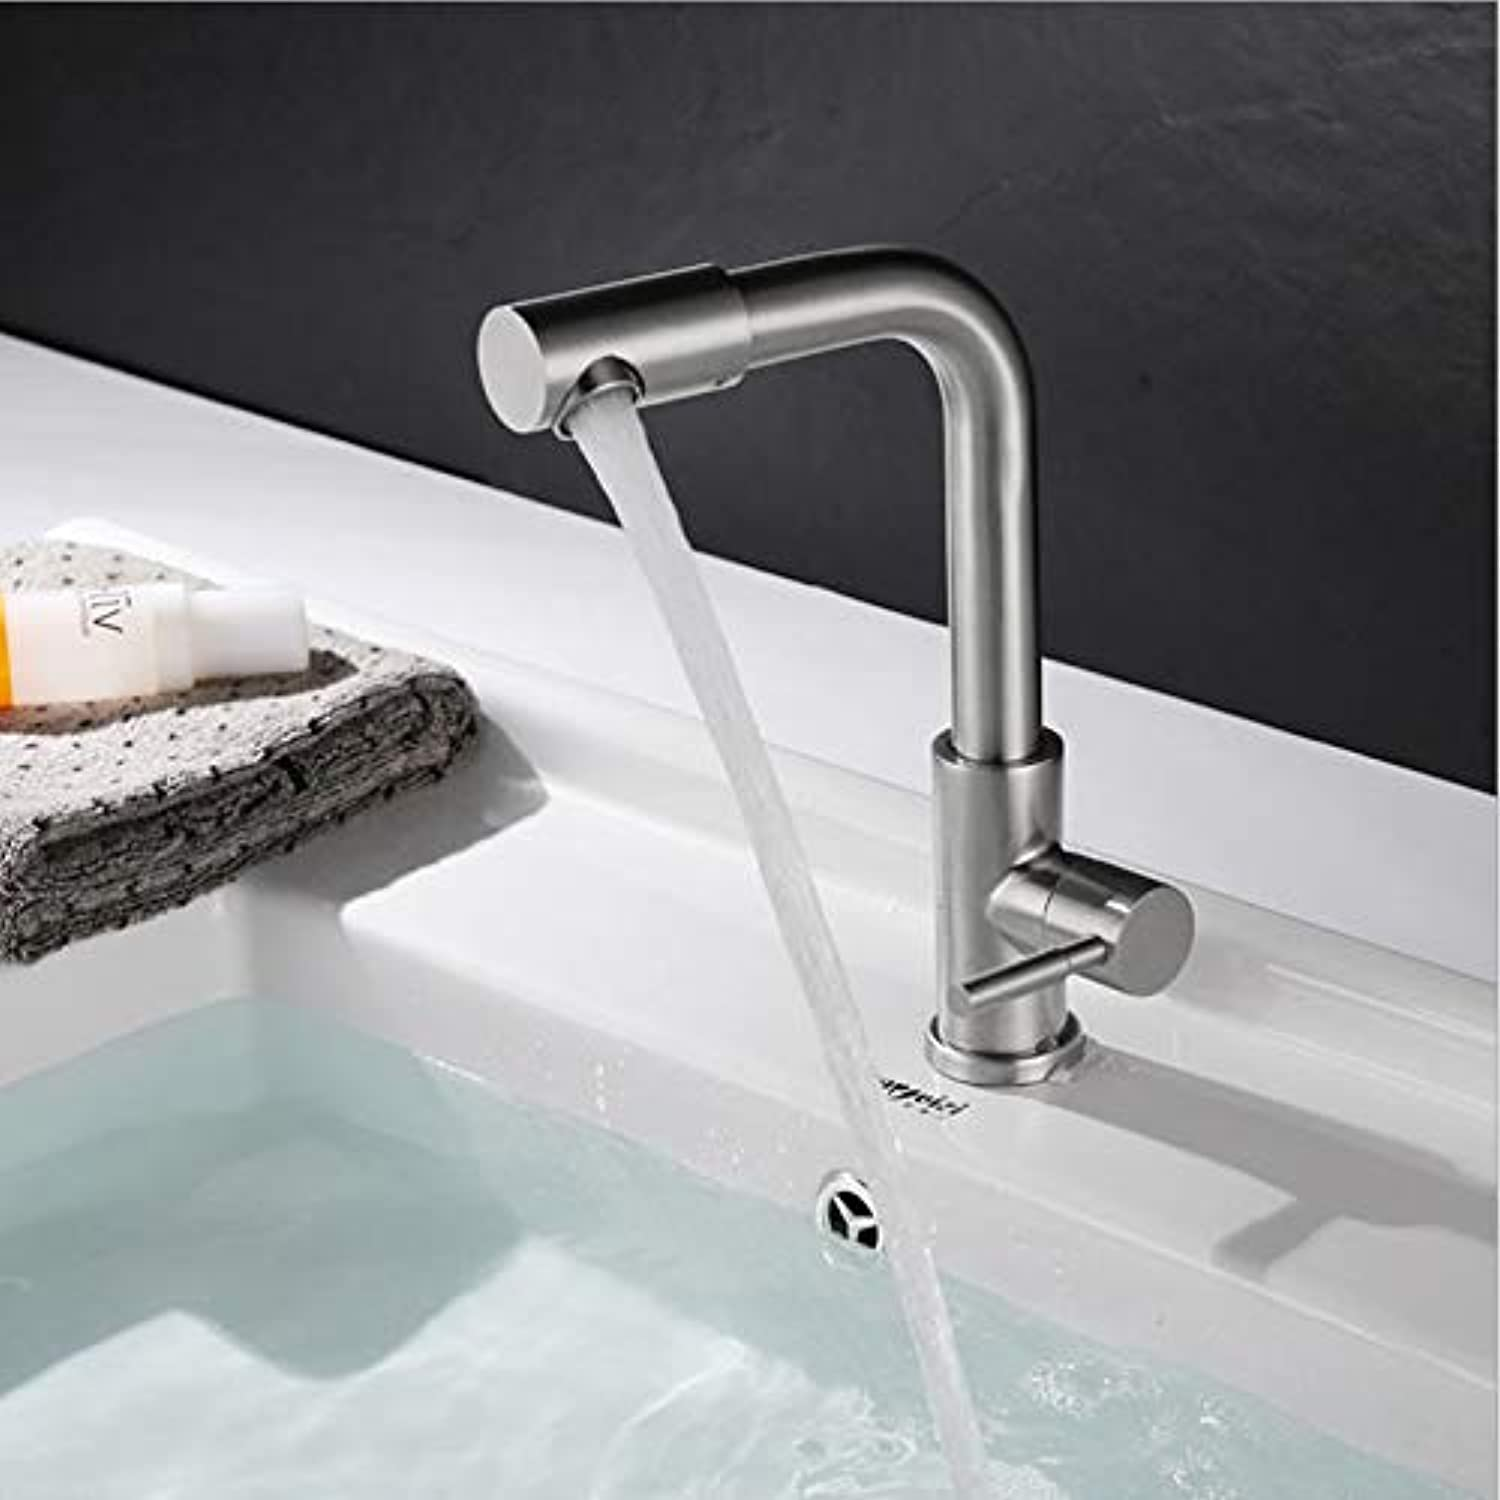 Decorry Stainless Steel Face Plate Mixer Faucet Sus304 Single Cold Bath Cold Washbasin Mixer The redation